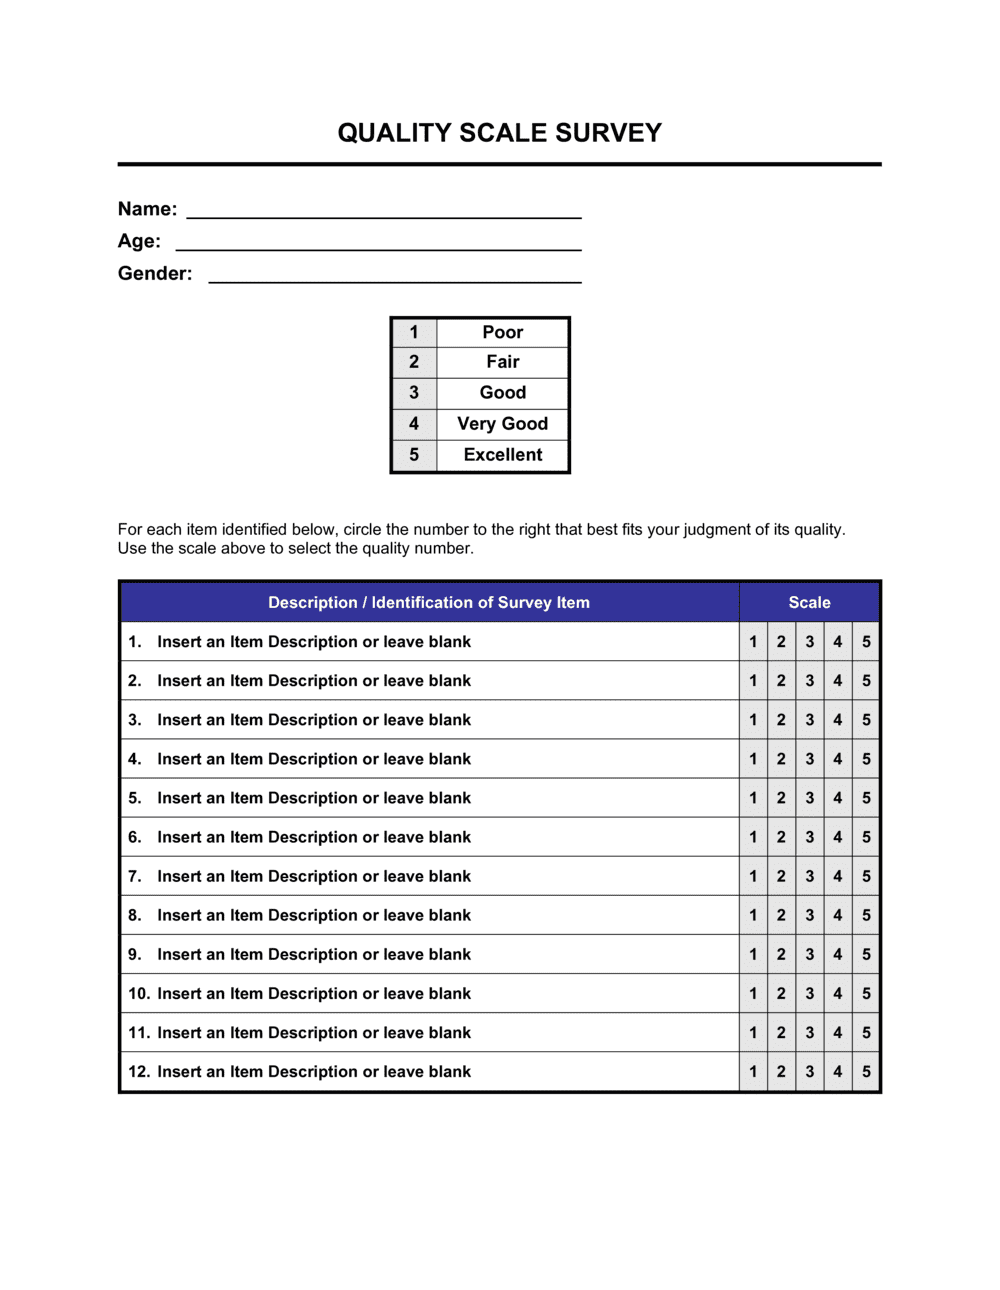 Business-in-a-Box's Quality Scale Survey Template